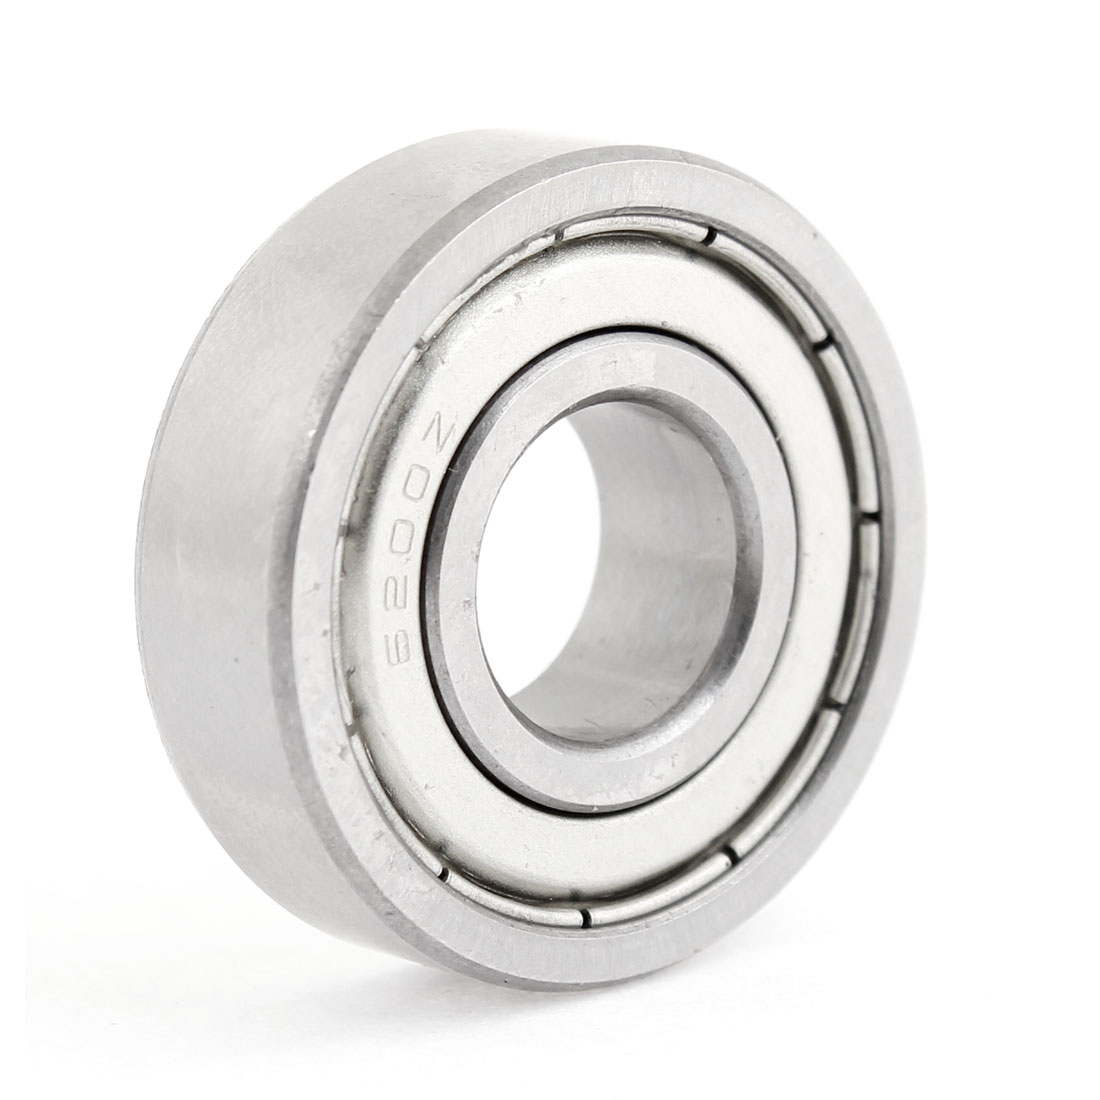 Unique Bargains Silver Tone Replaceable 6200Z 10x30x10mm Single Shielded Ball Bearing